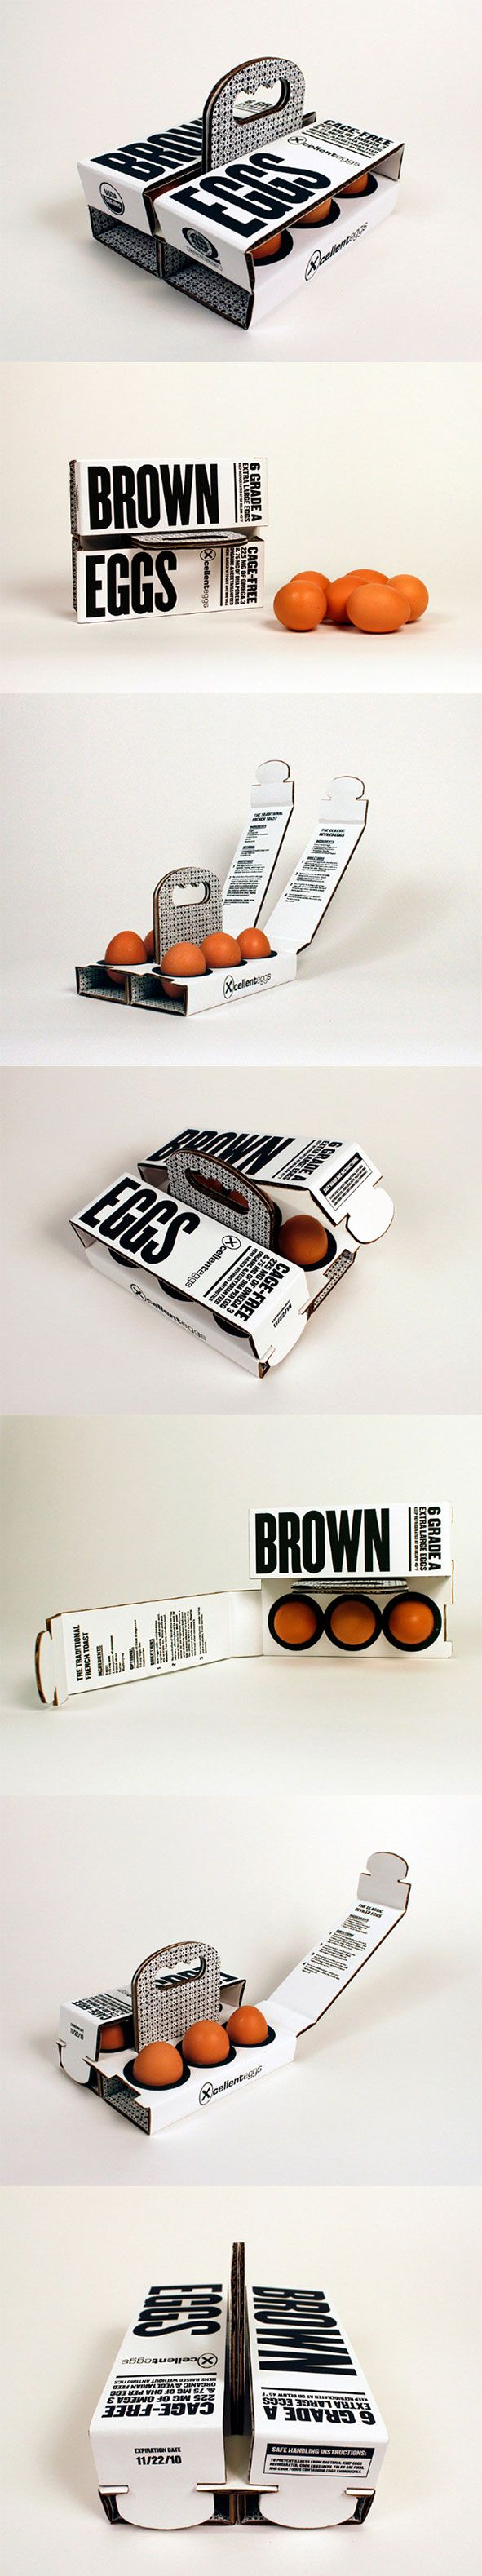 6 Brown Eggs (Concept) *** Designed by Sarah Machicado, a graduate from Maryland Institute College of Art PD